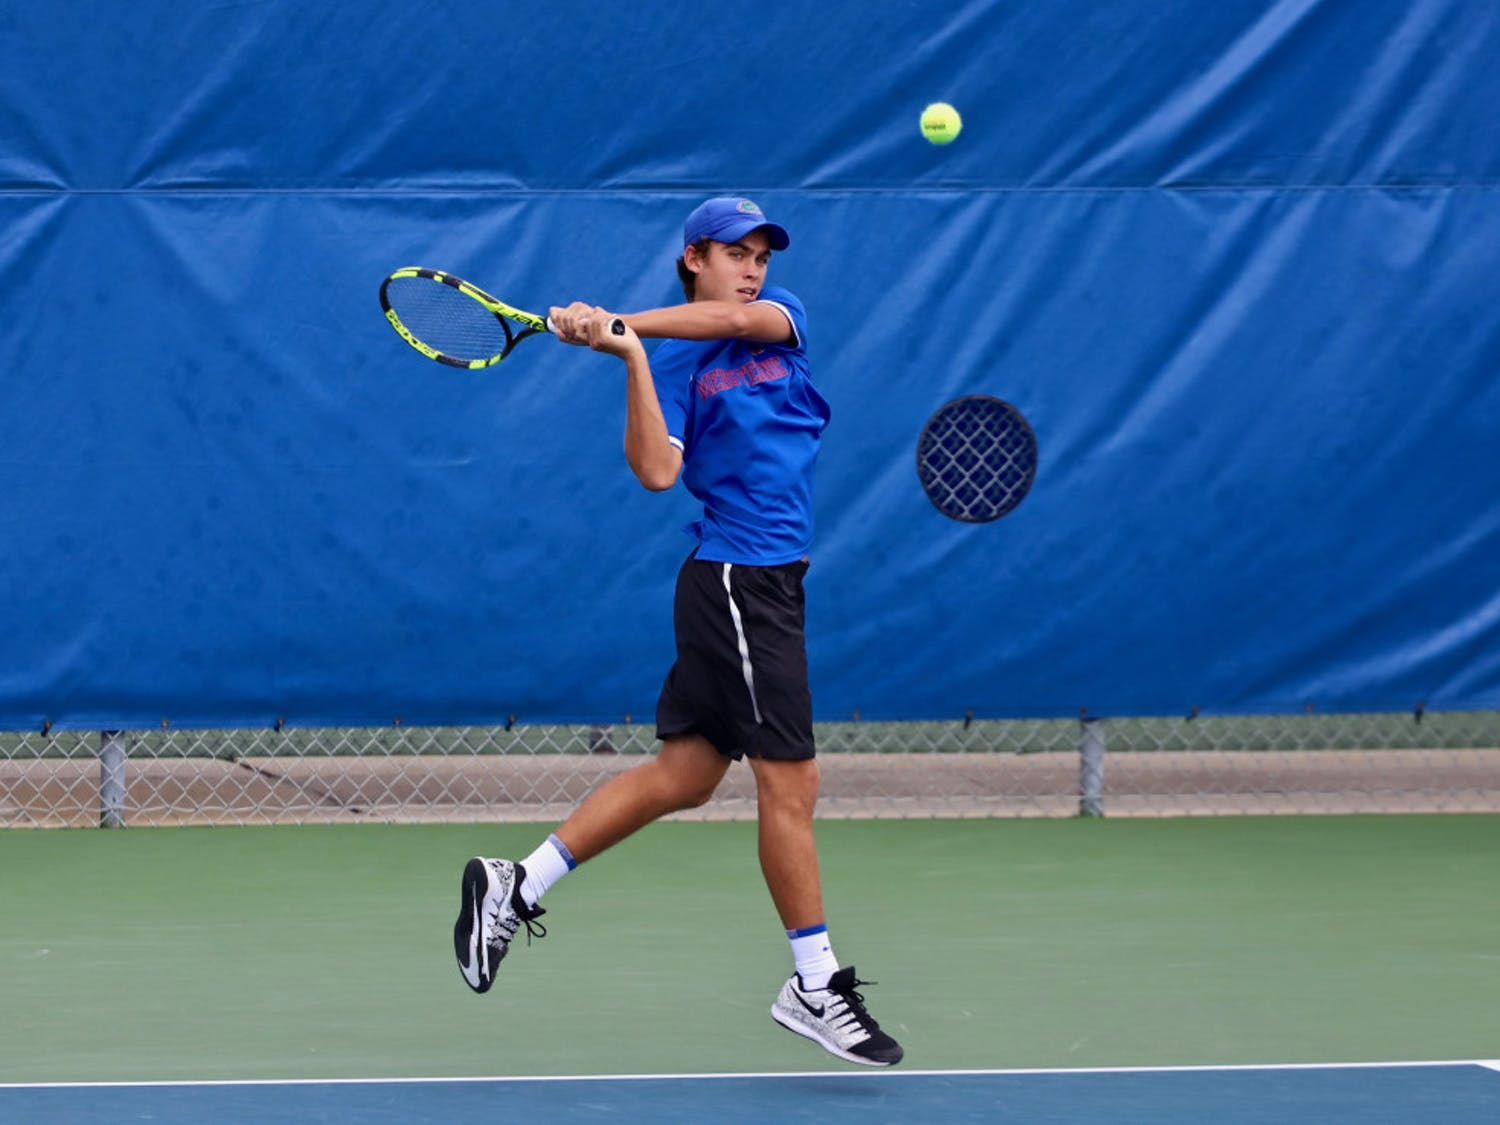 Sophomore Greysen Cacciatore split his two singles matches Thursday, failing to qualify.